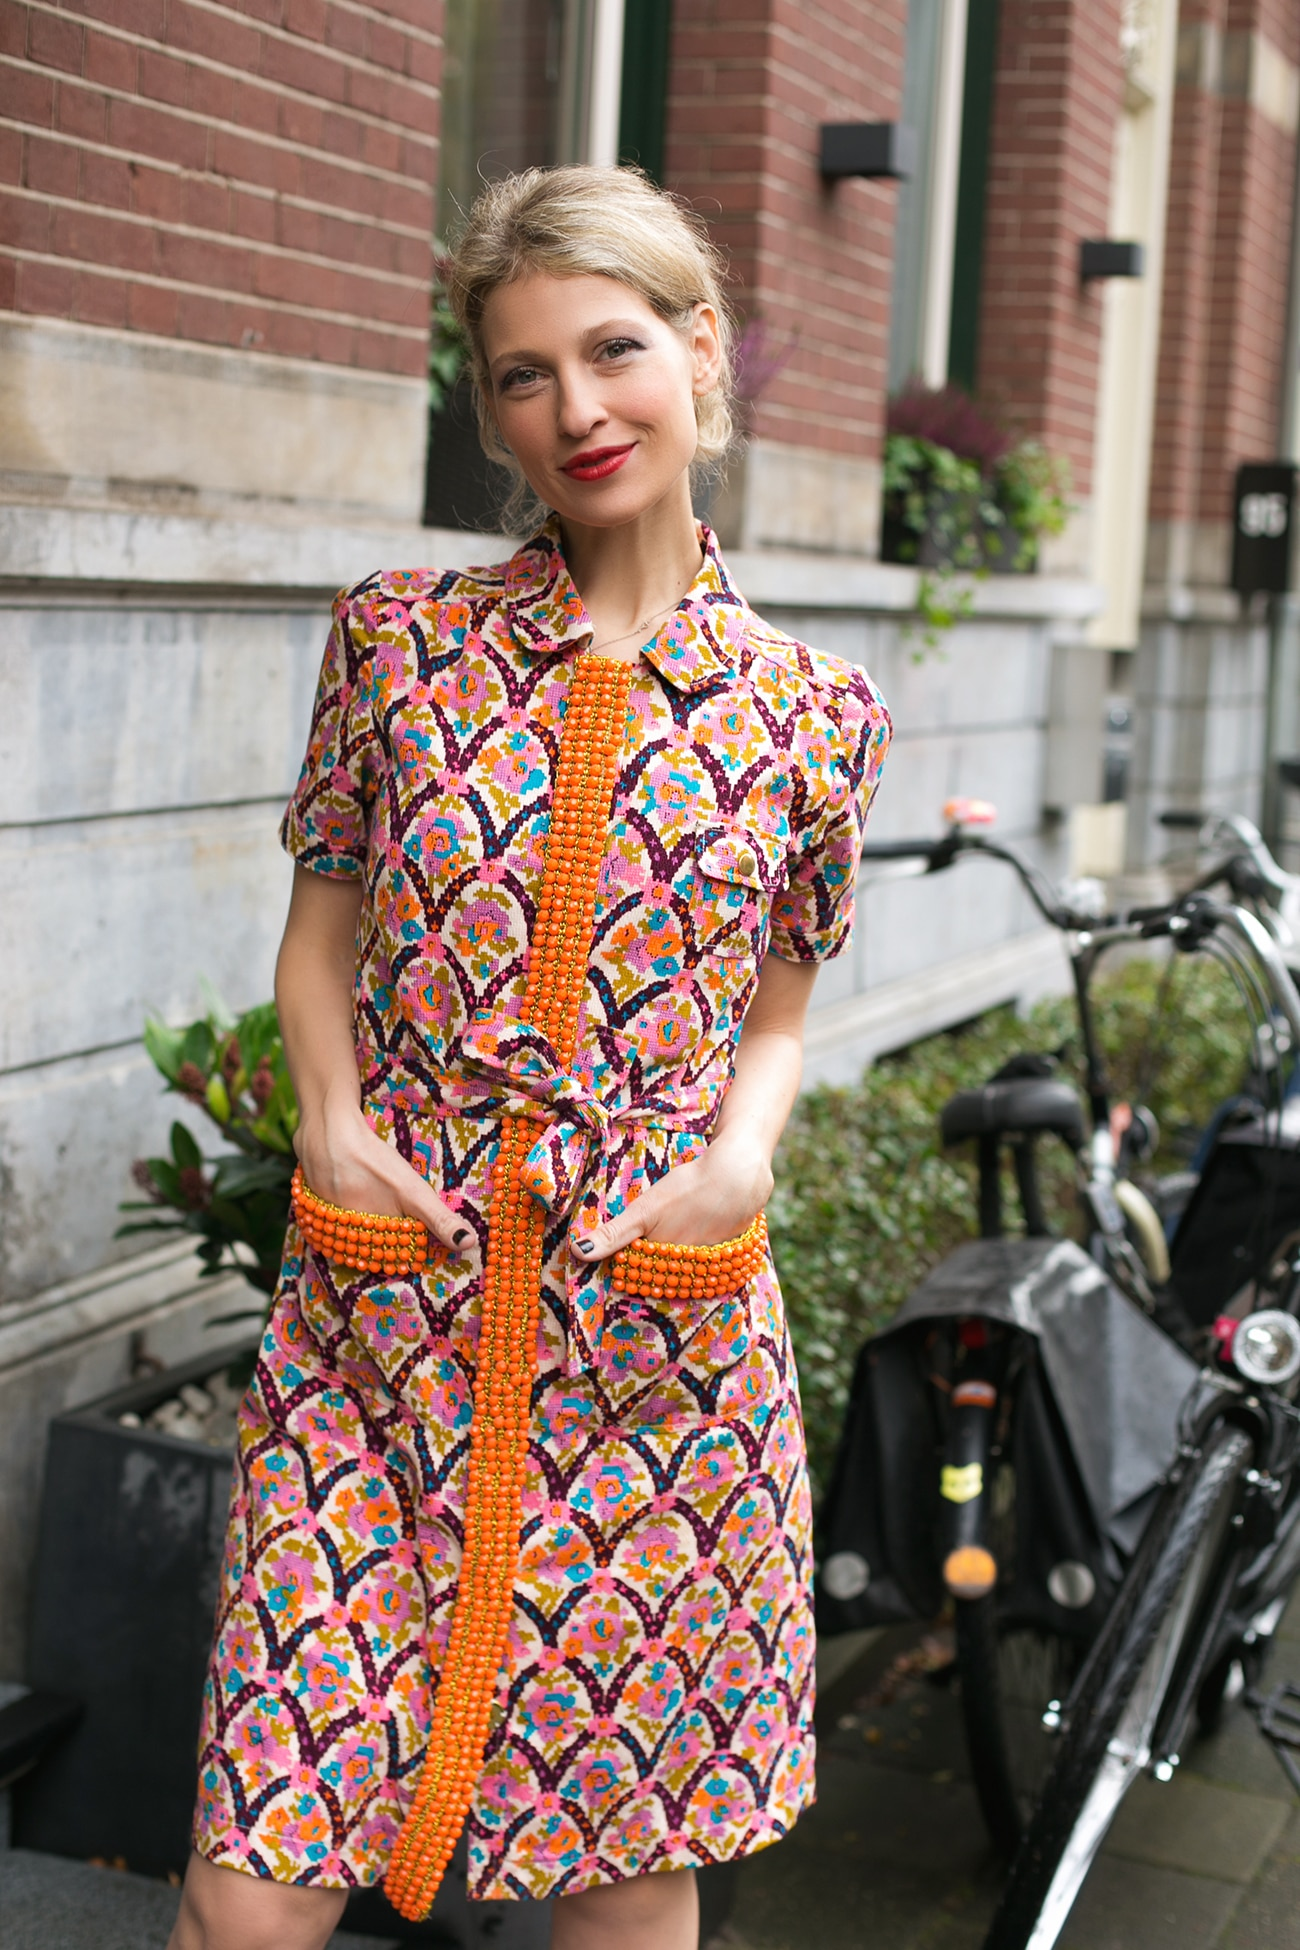 Victoria Onken sustainable fashion blogger